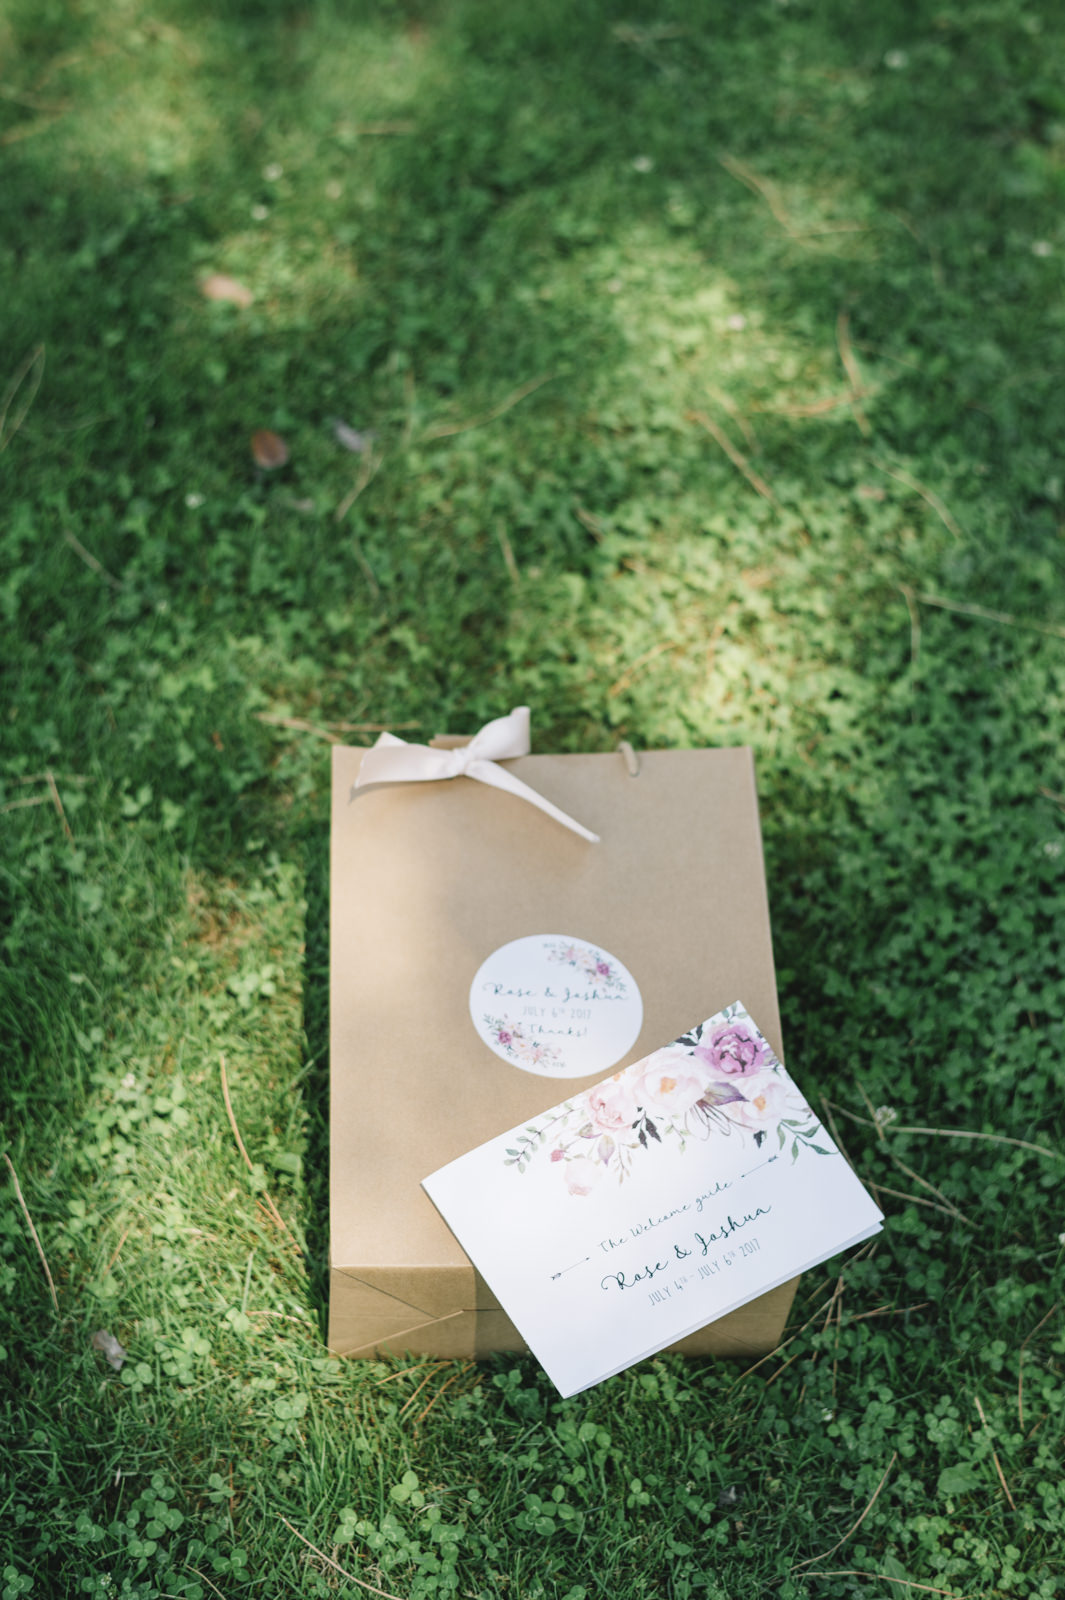 wedding invitation on green grass